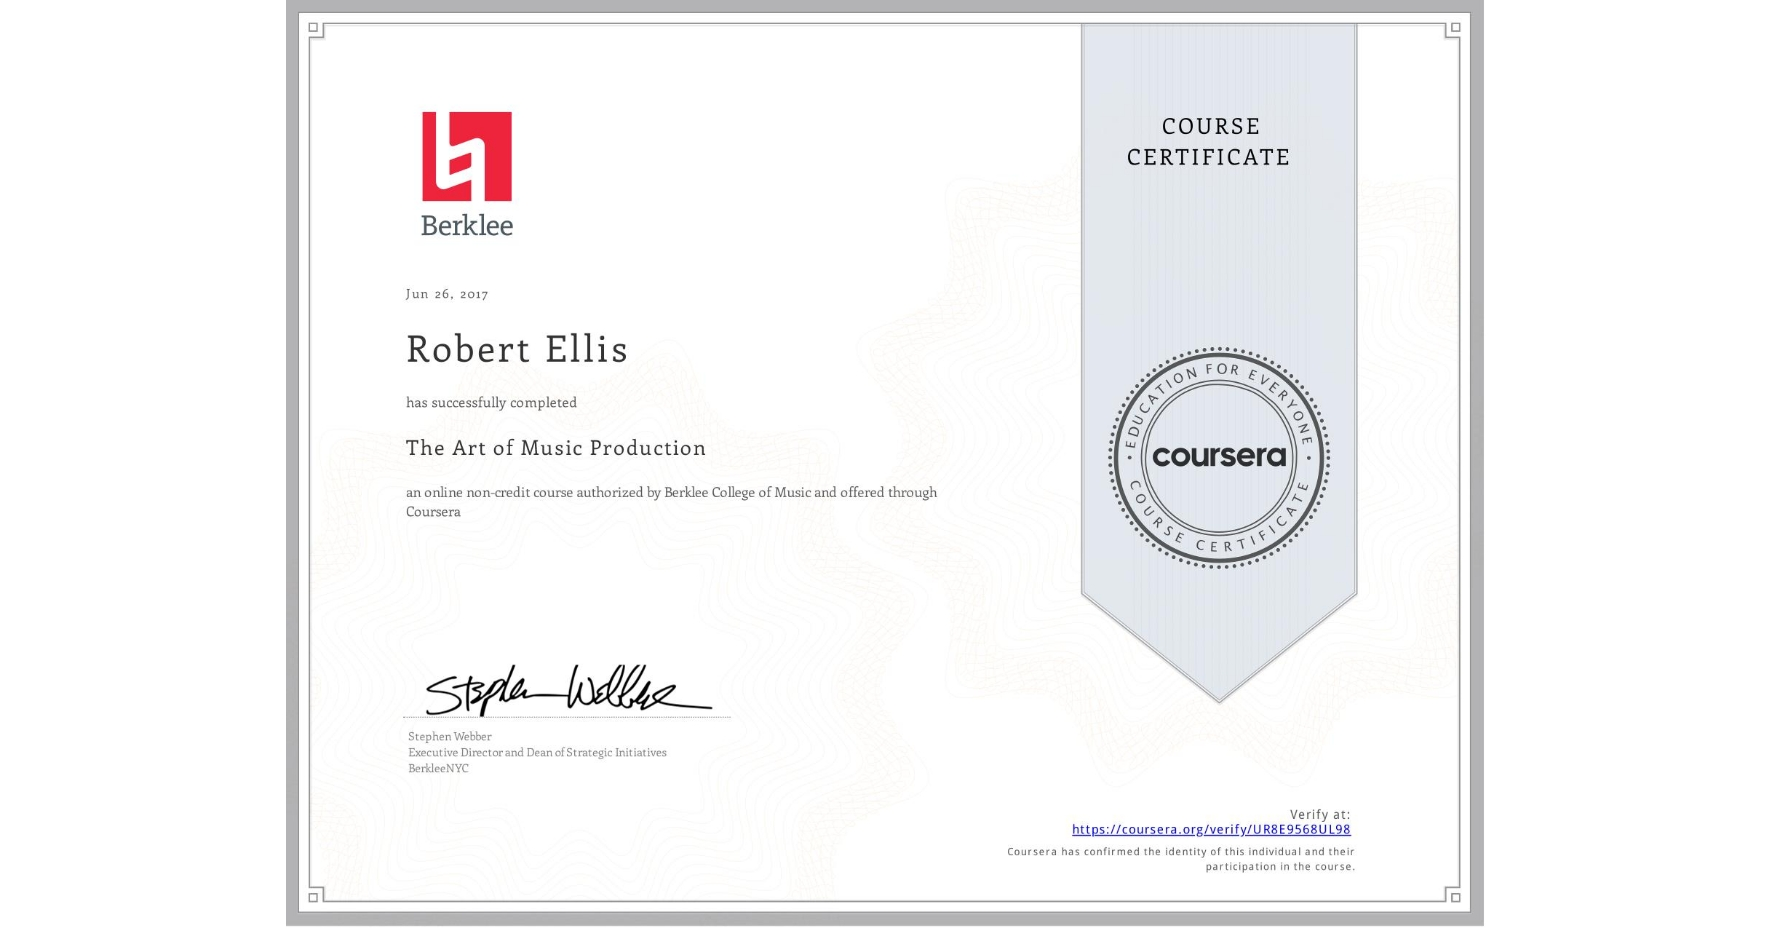 View certificate for Robert Ellis, The Art of Music Production, an online non-credit course authorized by Berklee College of Music and offered through Coursera